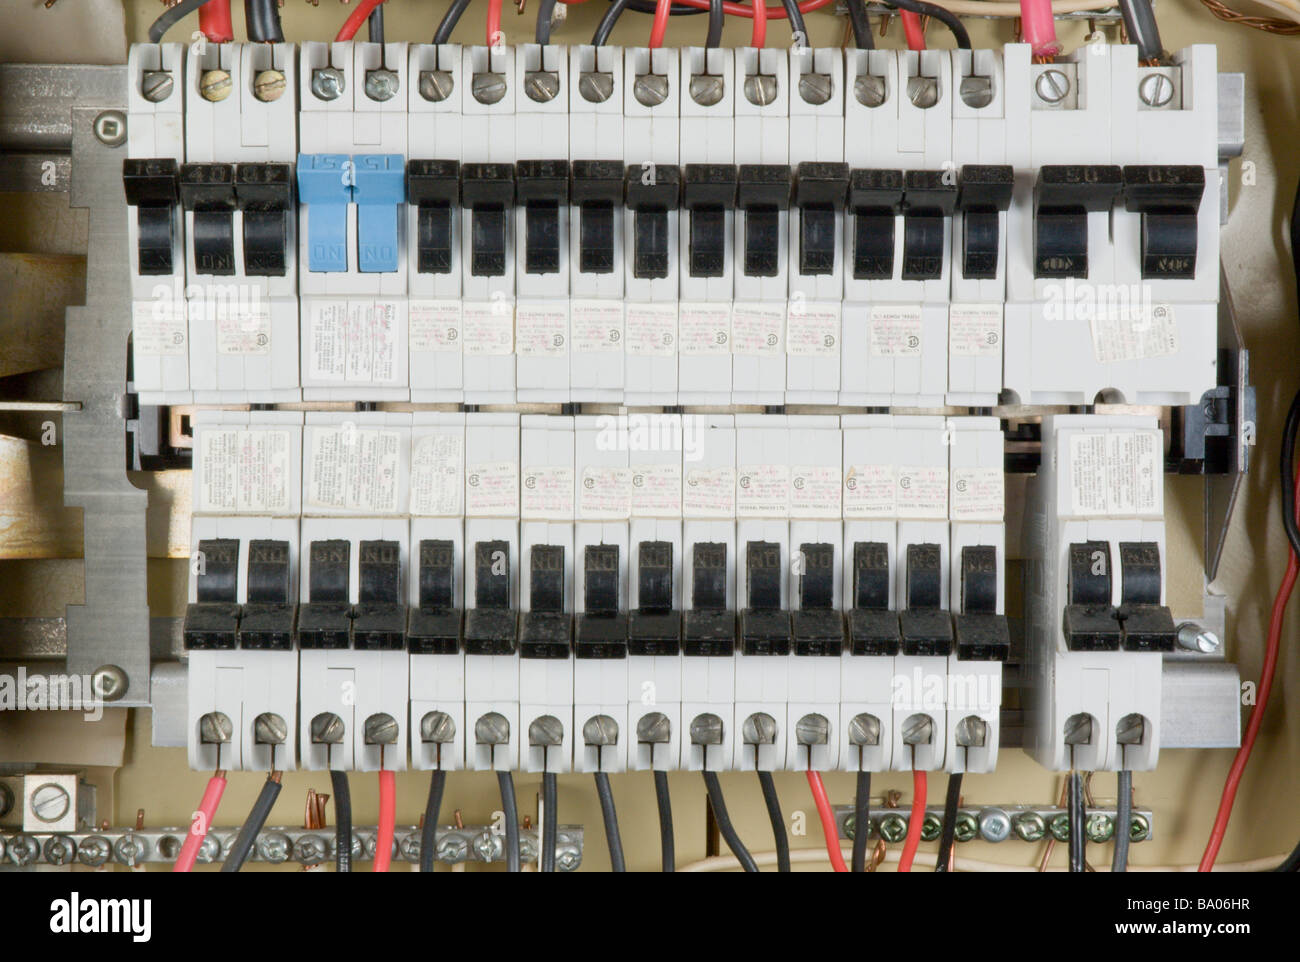 Fuse Box Household Stock Photos Images Circuit Breaker Panel Image Page Elecetrical With Breakers